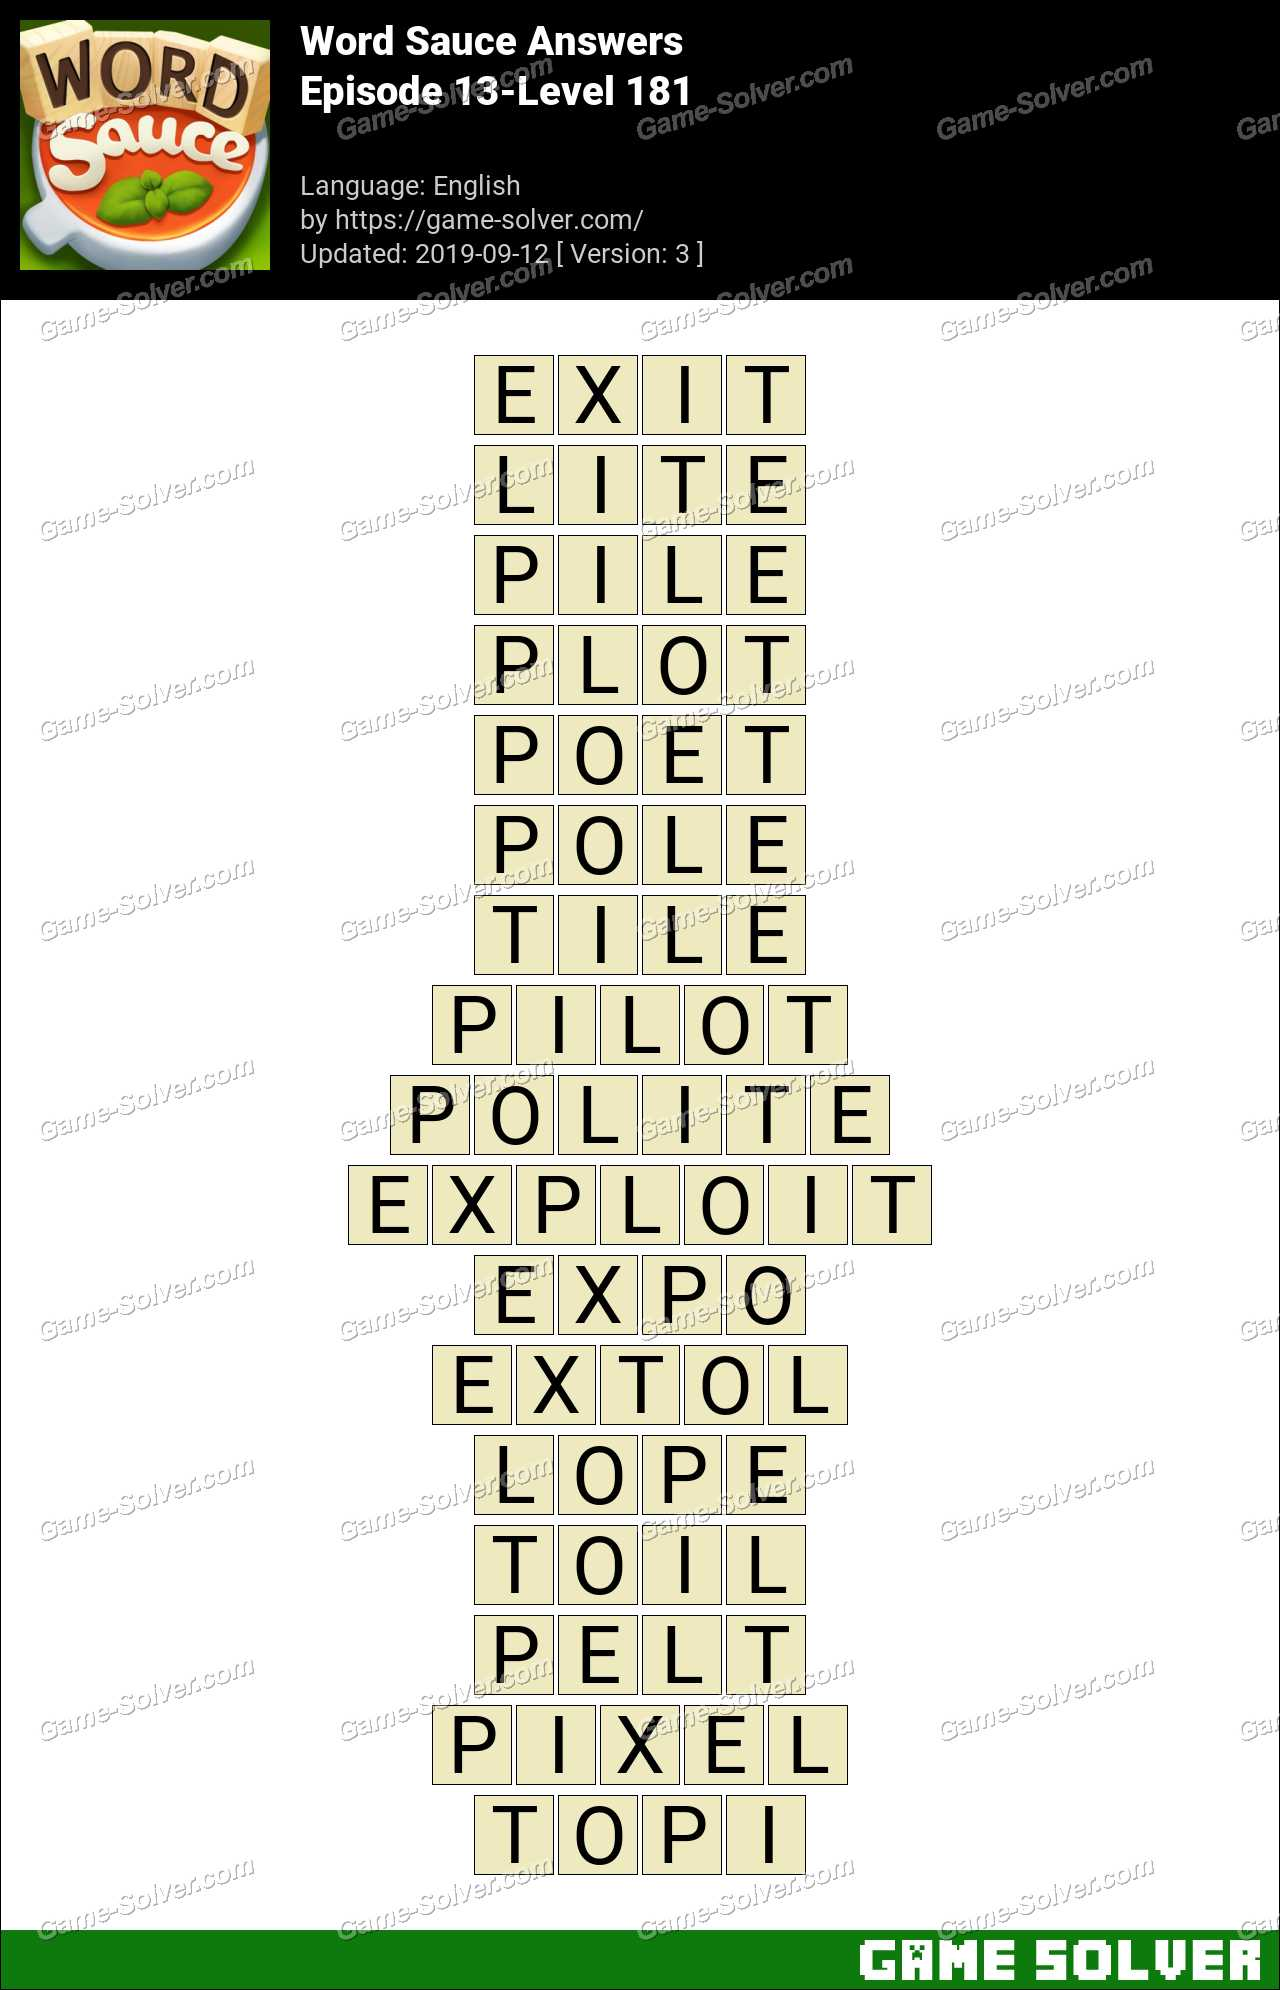 Word Sauce Episode 13 Level 181 Answers Game Solver